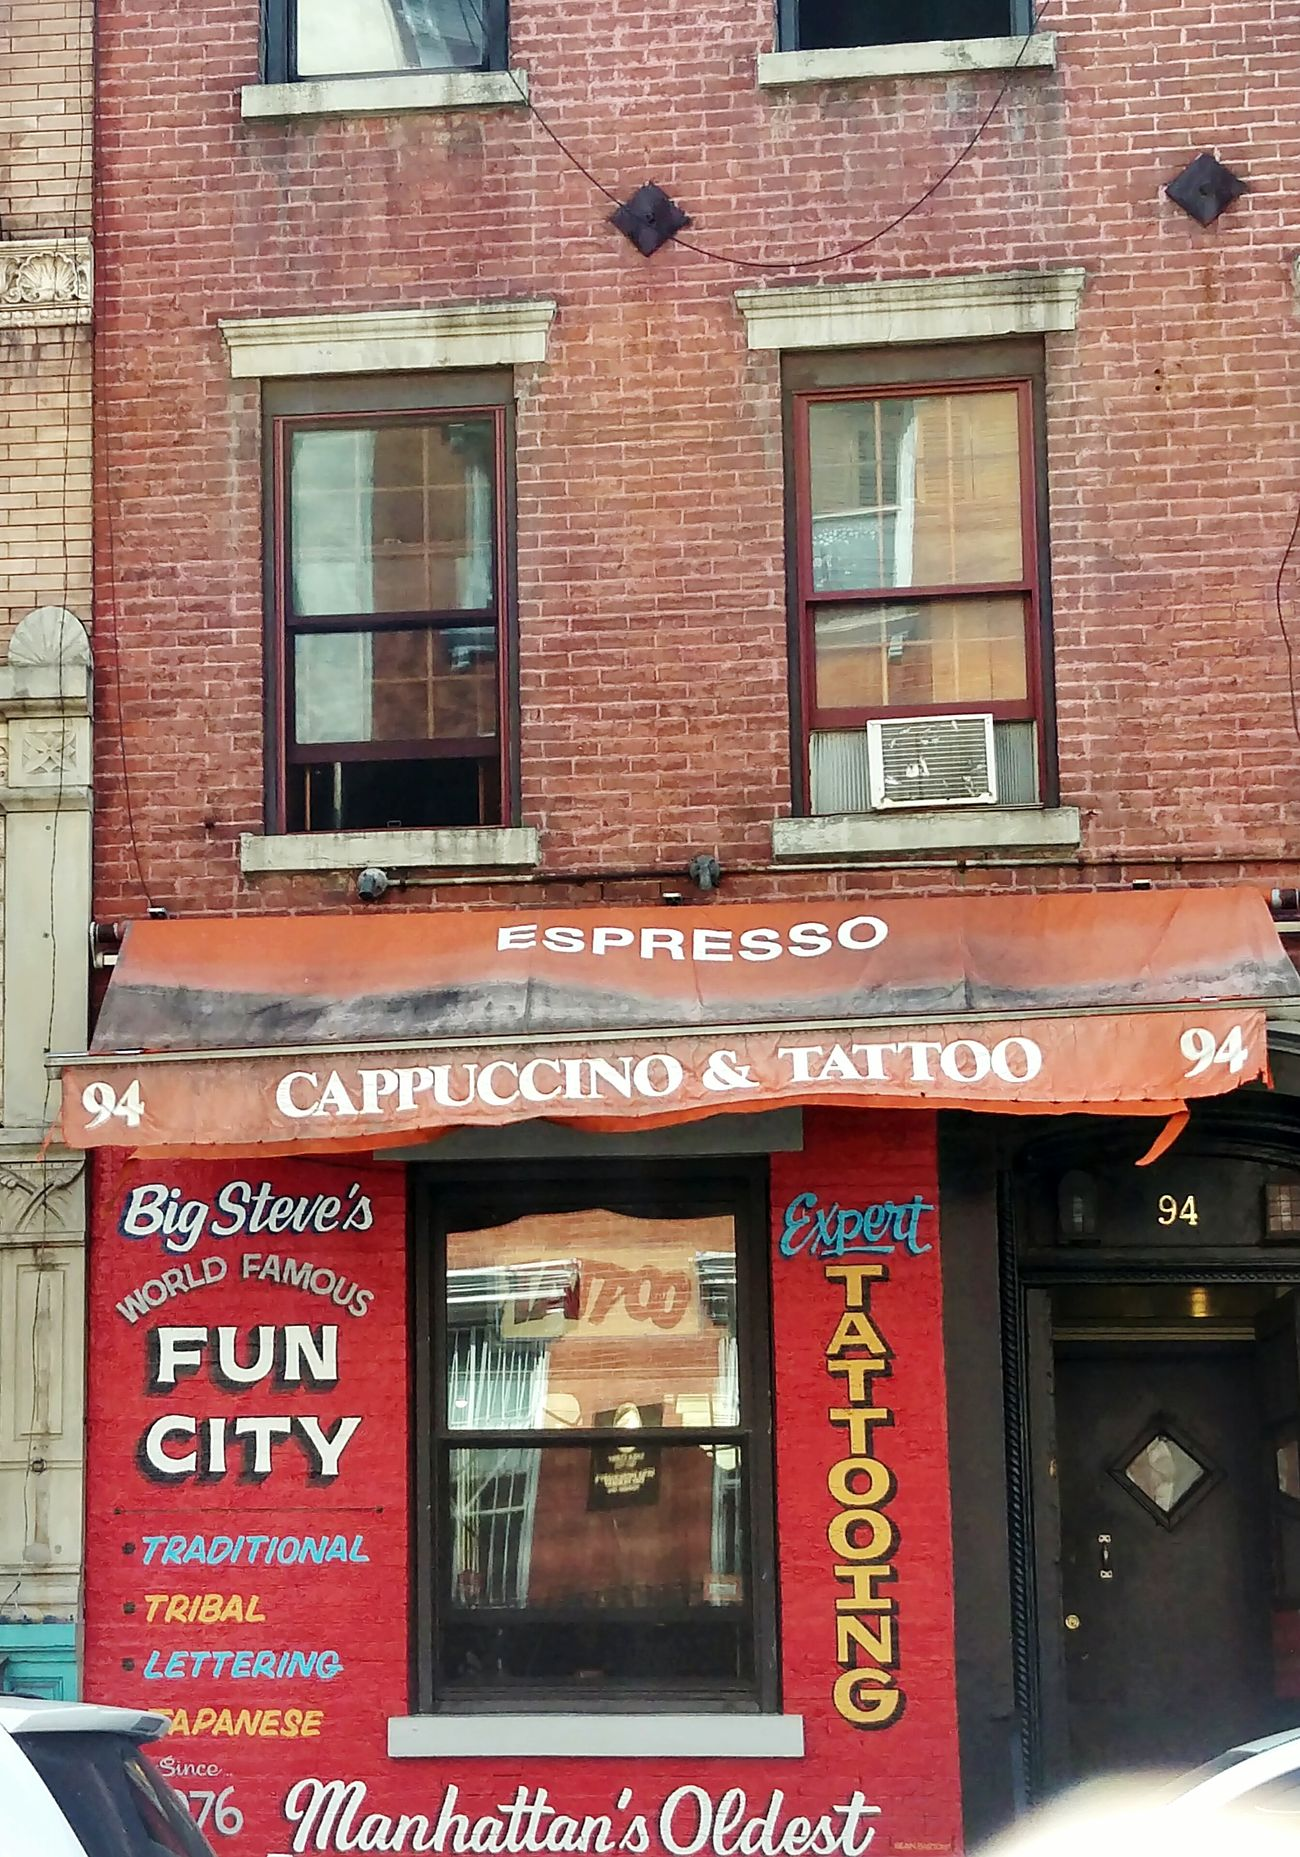 The Best Of New York Tattooshop FUN CITY Cappuccino